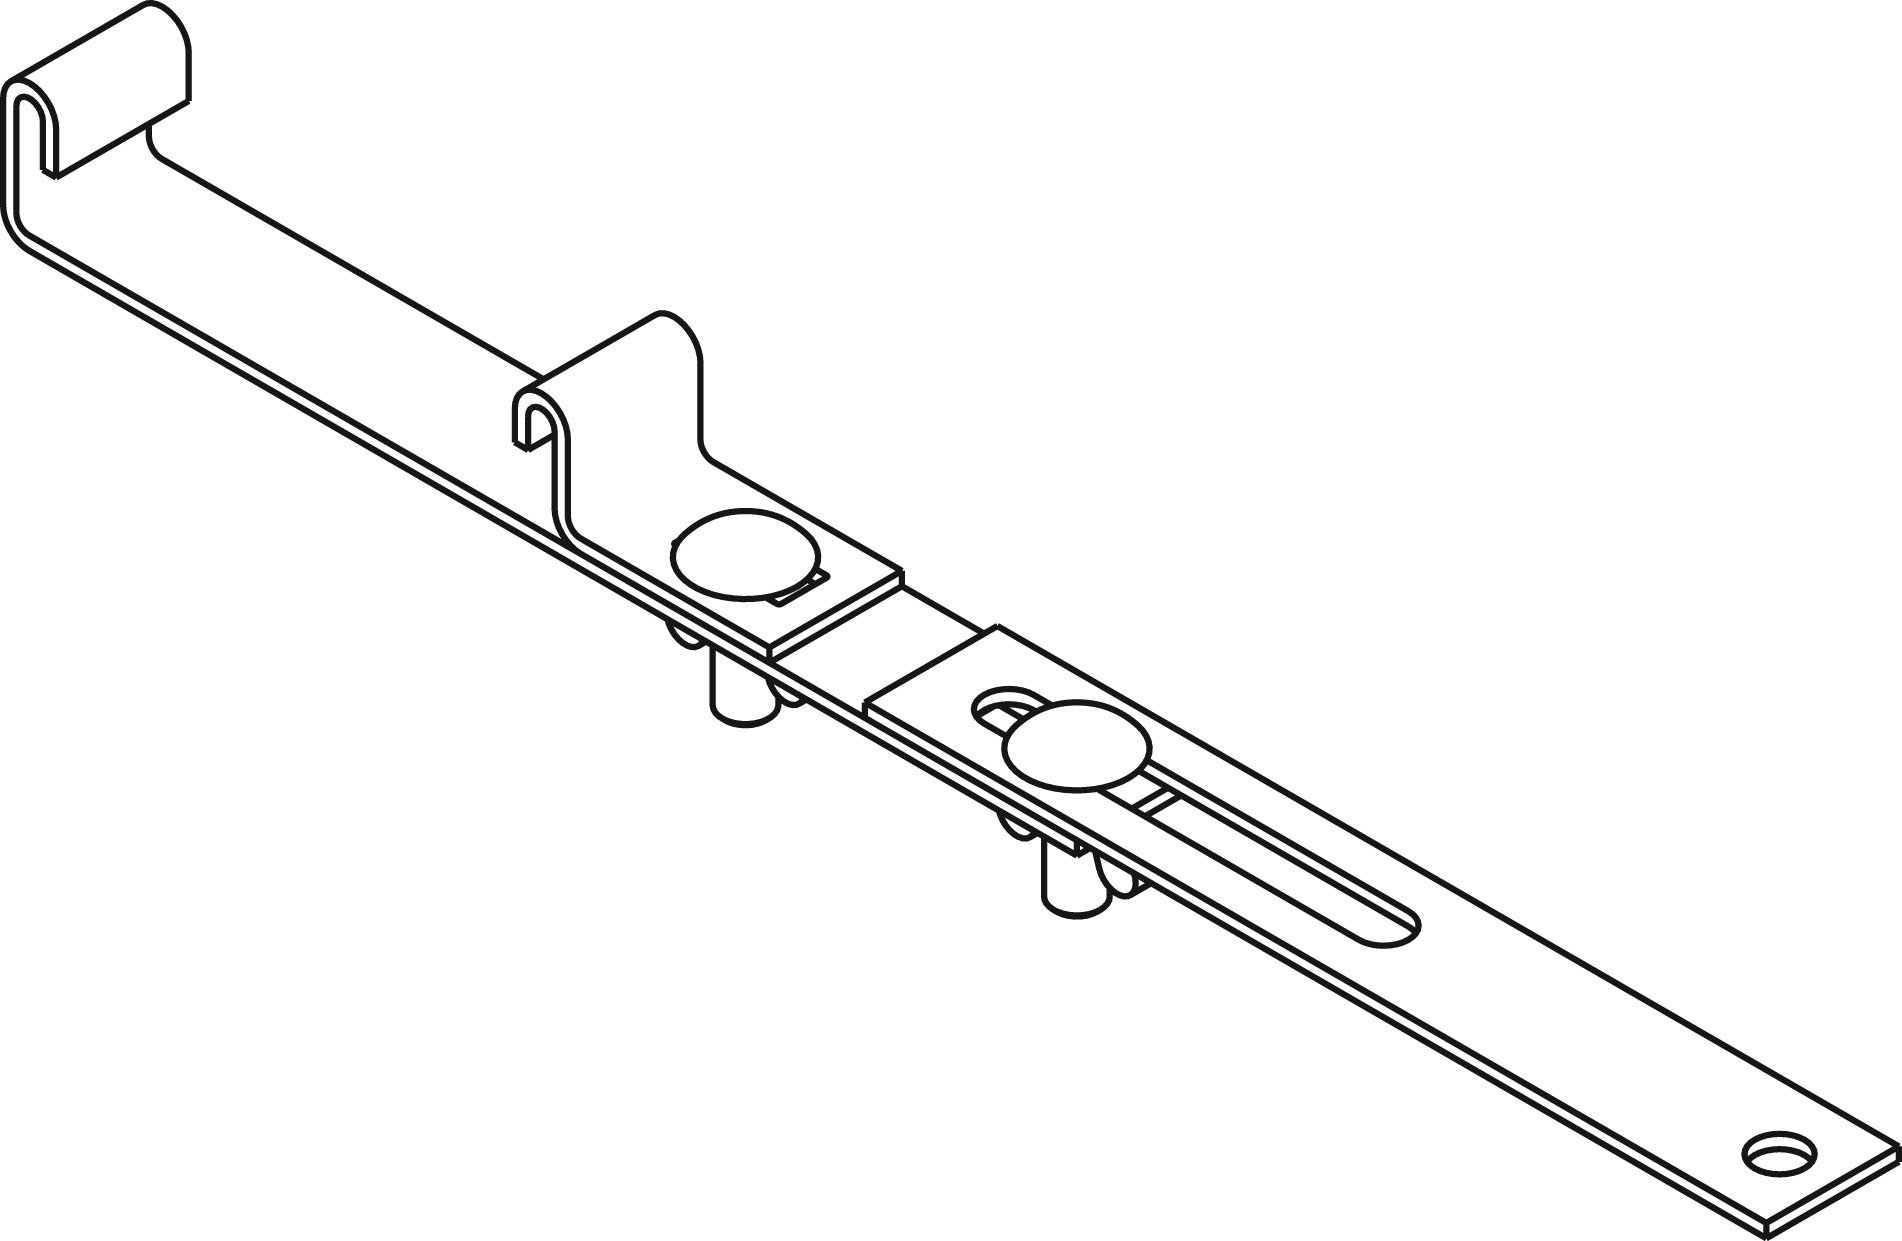 J 2 Lower Engine Support Bar Tool